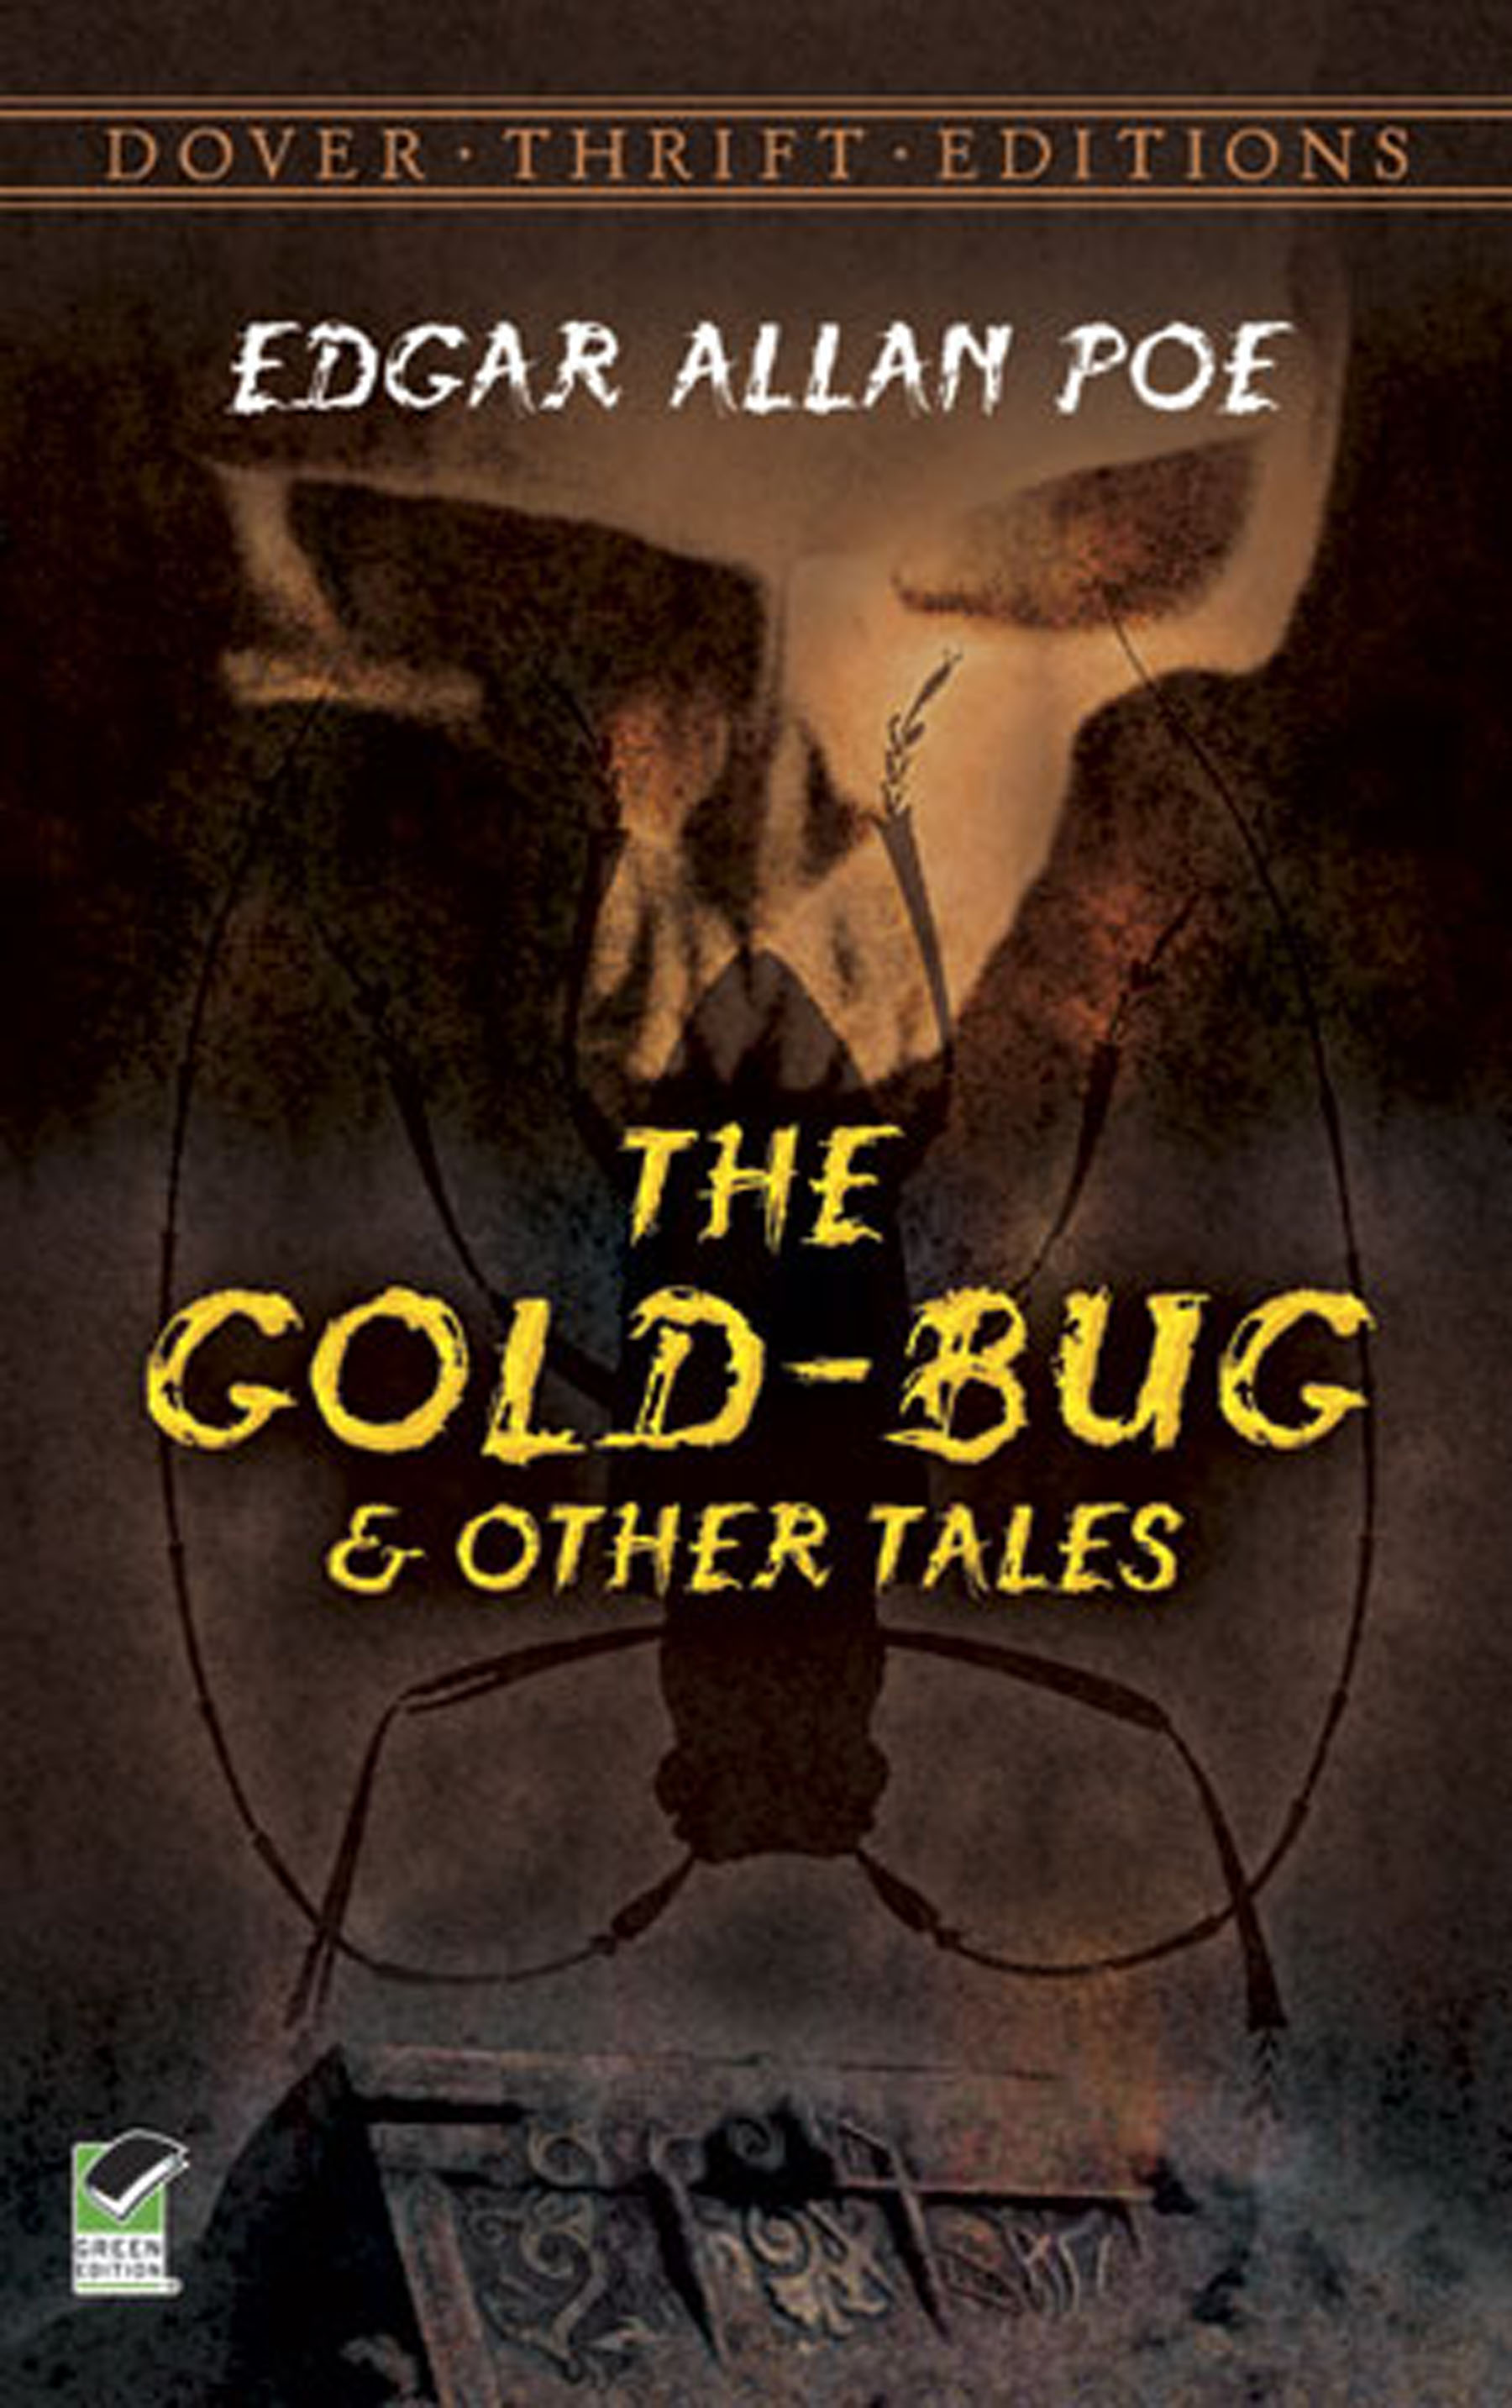 Gold-Bug and Other Tales